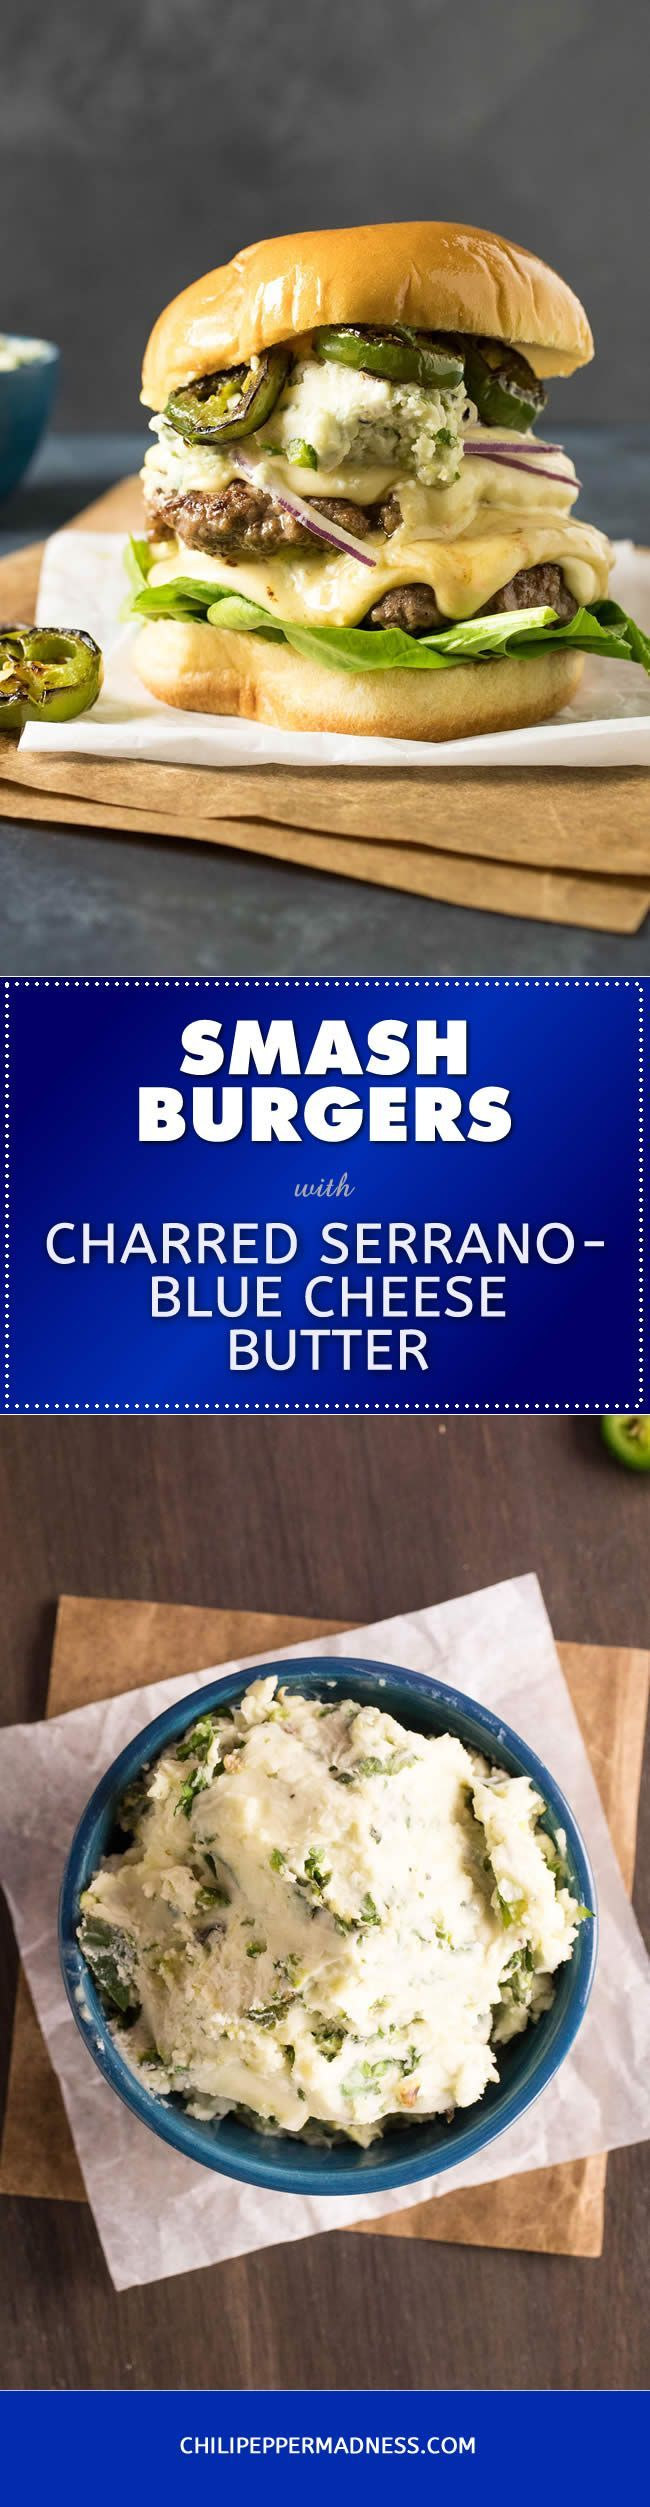 Smashburgers with Charred Serrano-Blue Cheese Butter - A recipe for perfect, decadent handmade burgers made with 80/20 ground beef, seared just right then topped with outrageous blue cheese-butter spiked with charred serrano peppers. So. Freaking. Awesome.